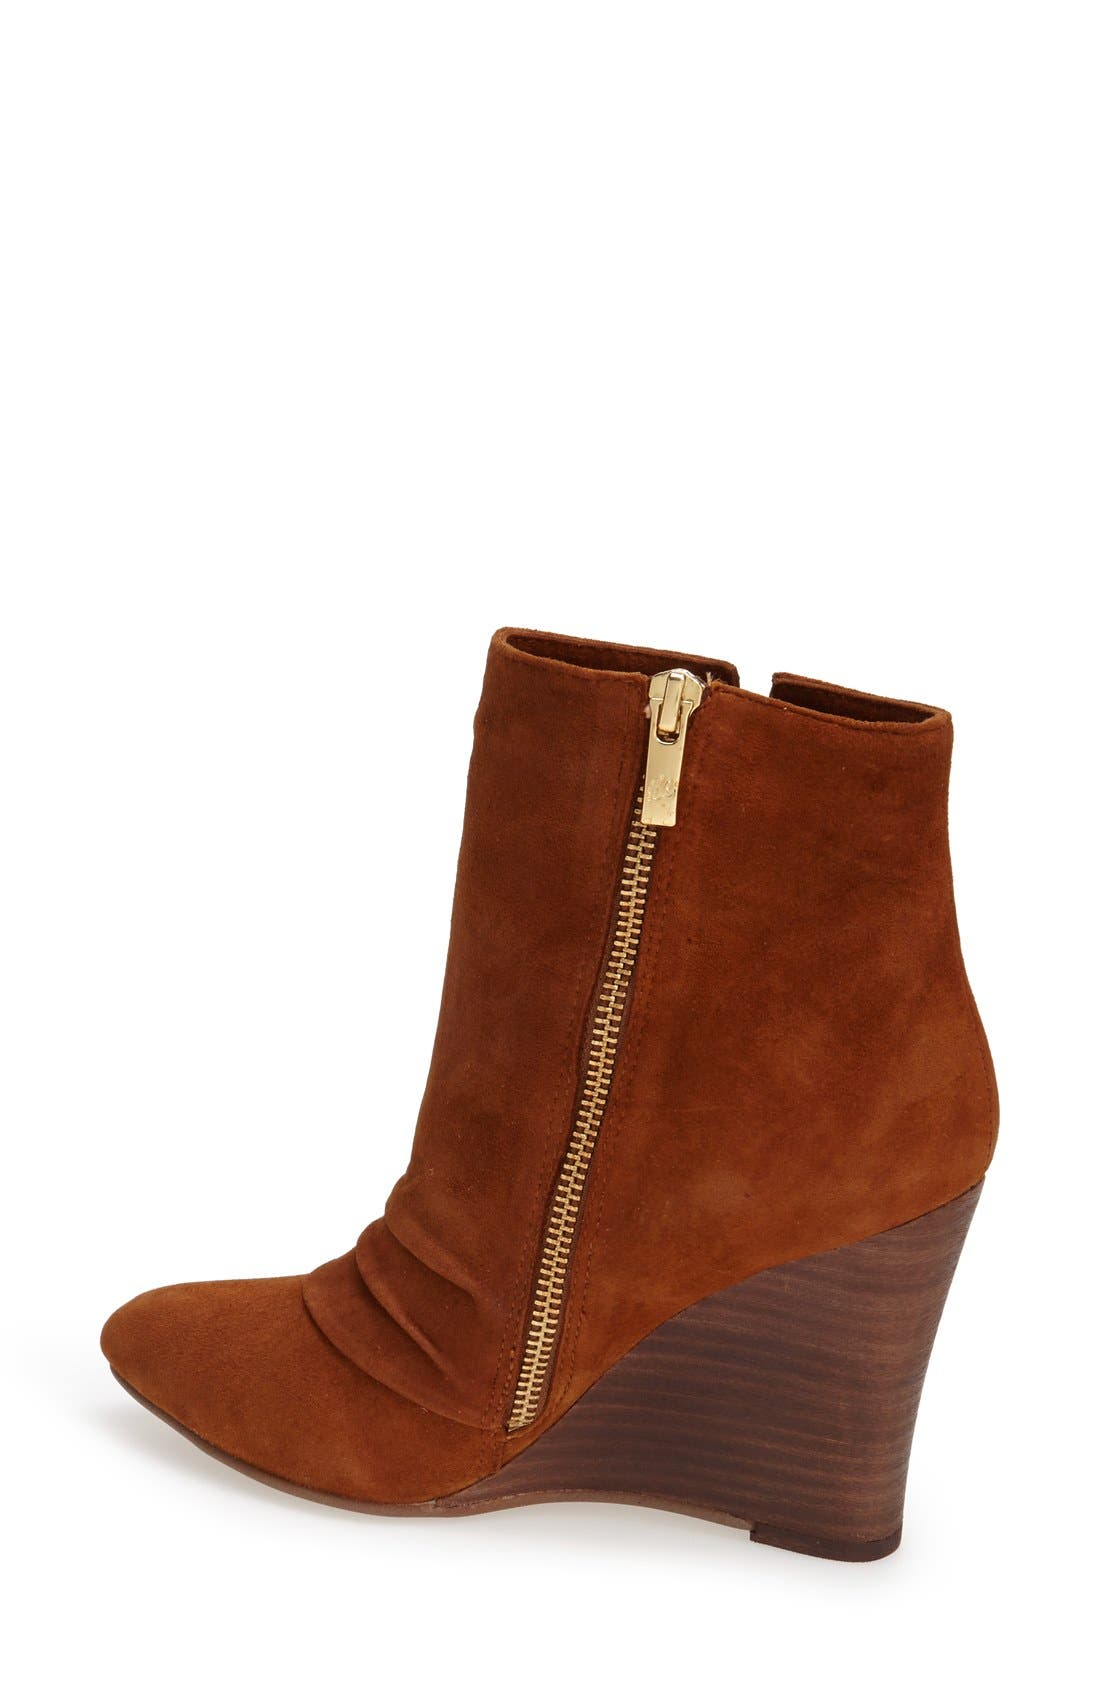 'Candyce' Wedge Bootie,                             Alternate thumbnail 2, color,                             Ginger Suede